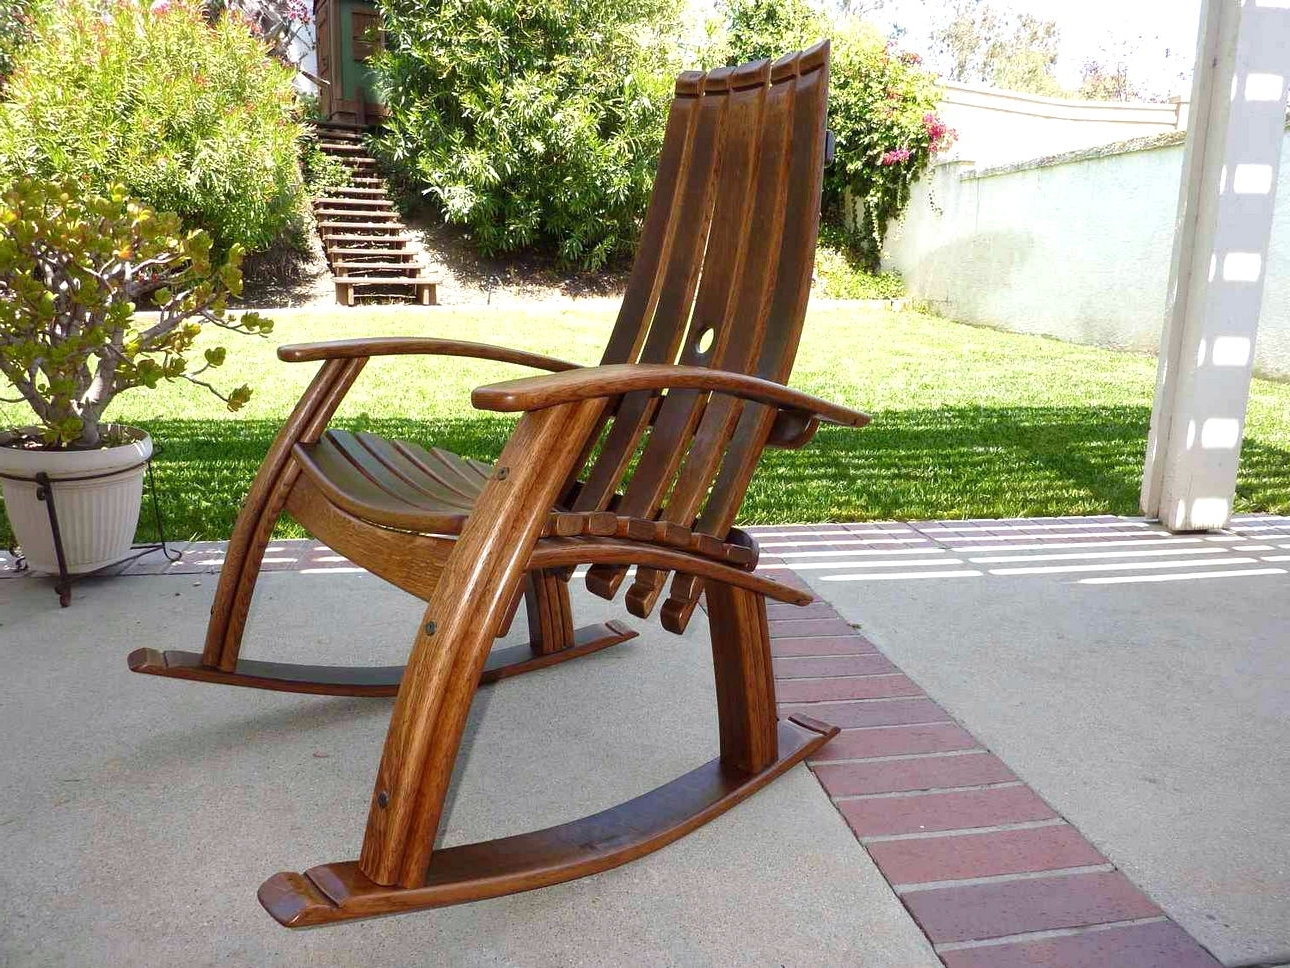 2018 Rocking Chair Outdoor Wooden Pertaining To Outdoor Wooden Rocking Chairs Design – Home Interior And Furniture (View 2 of 15)